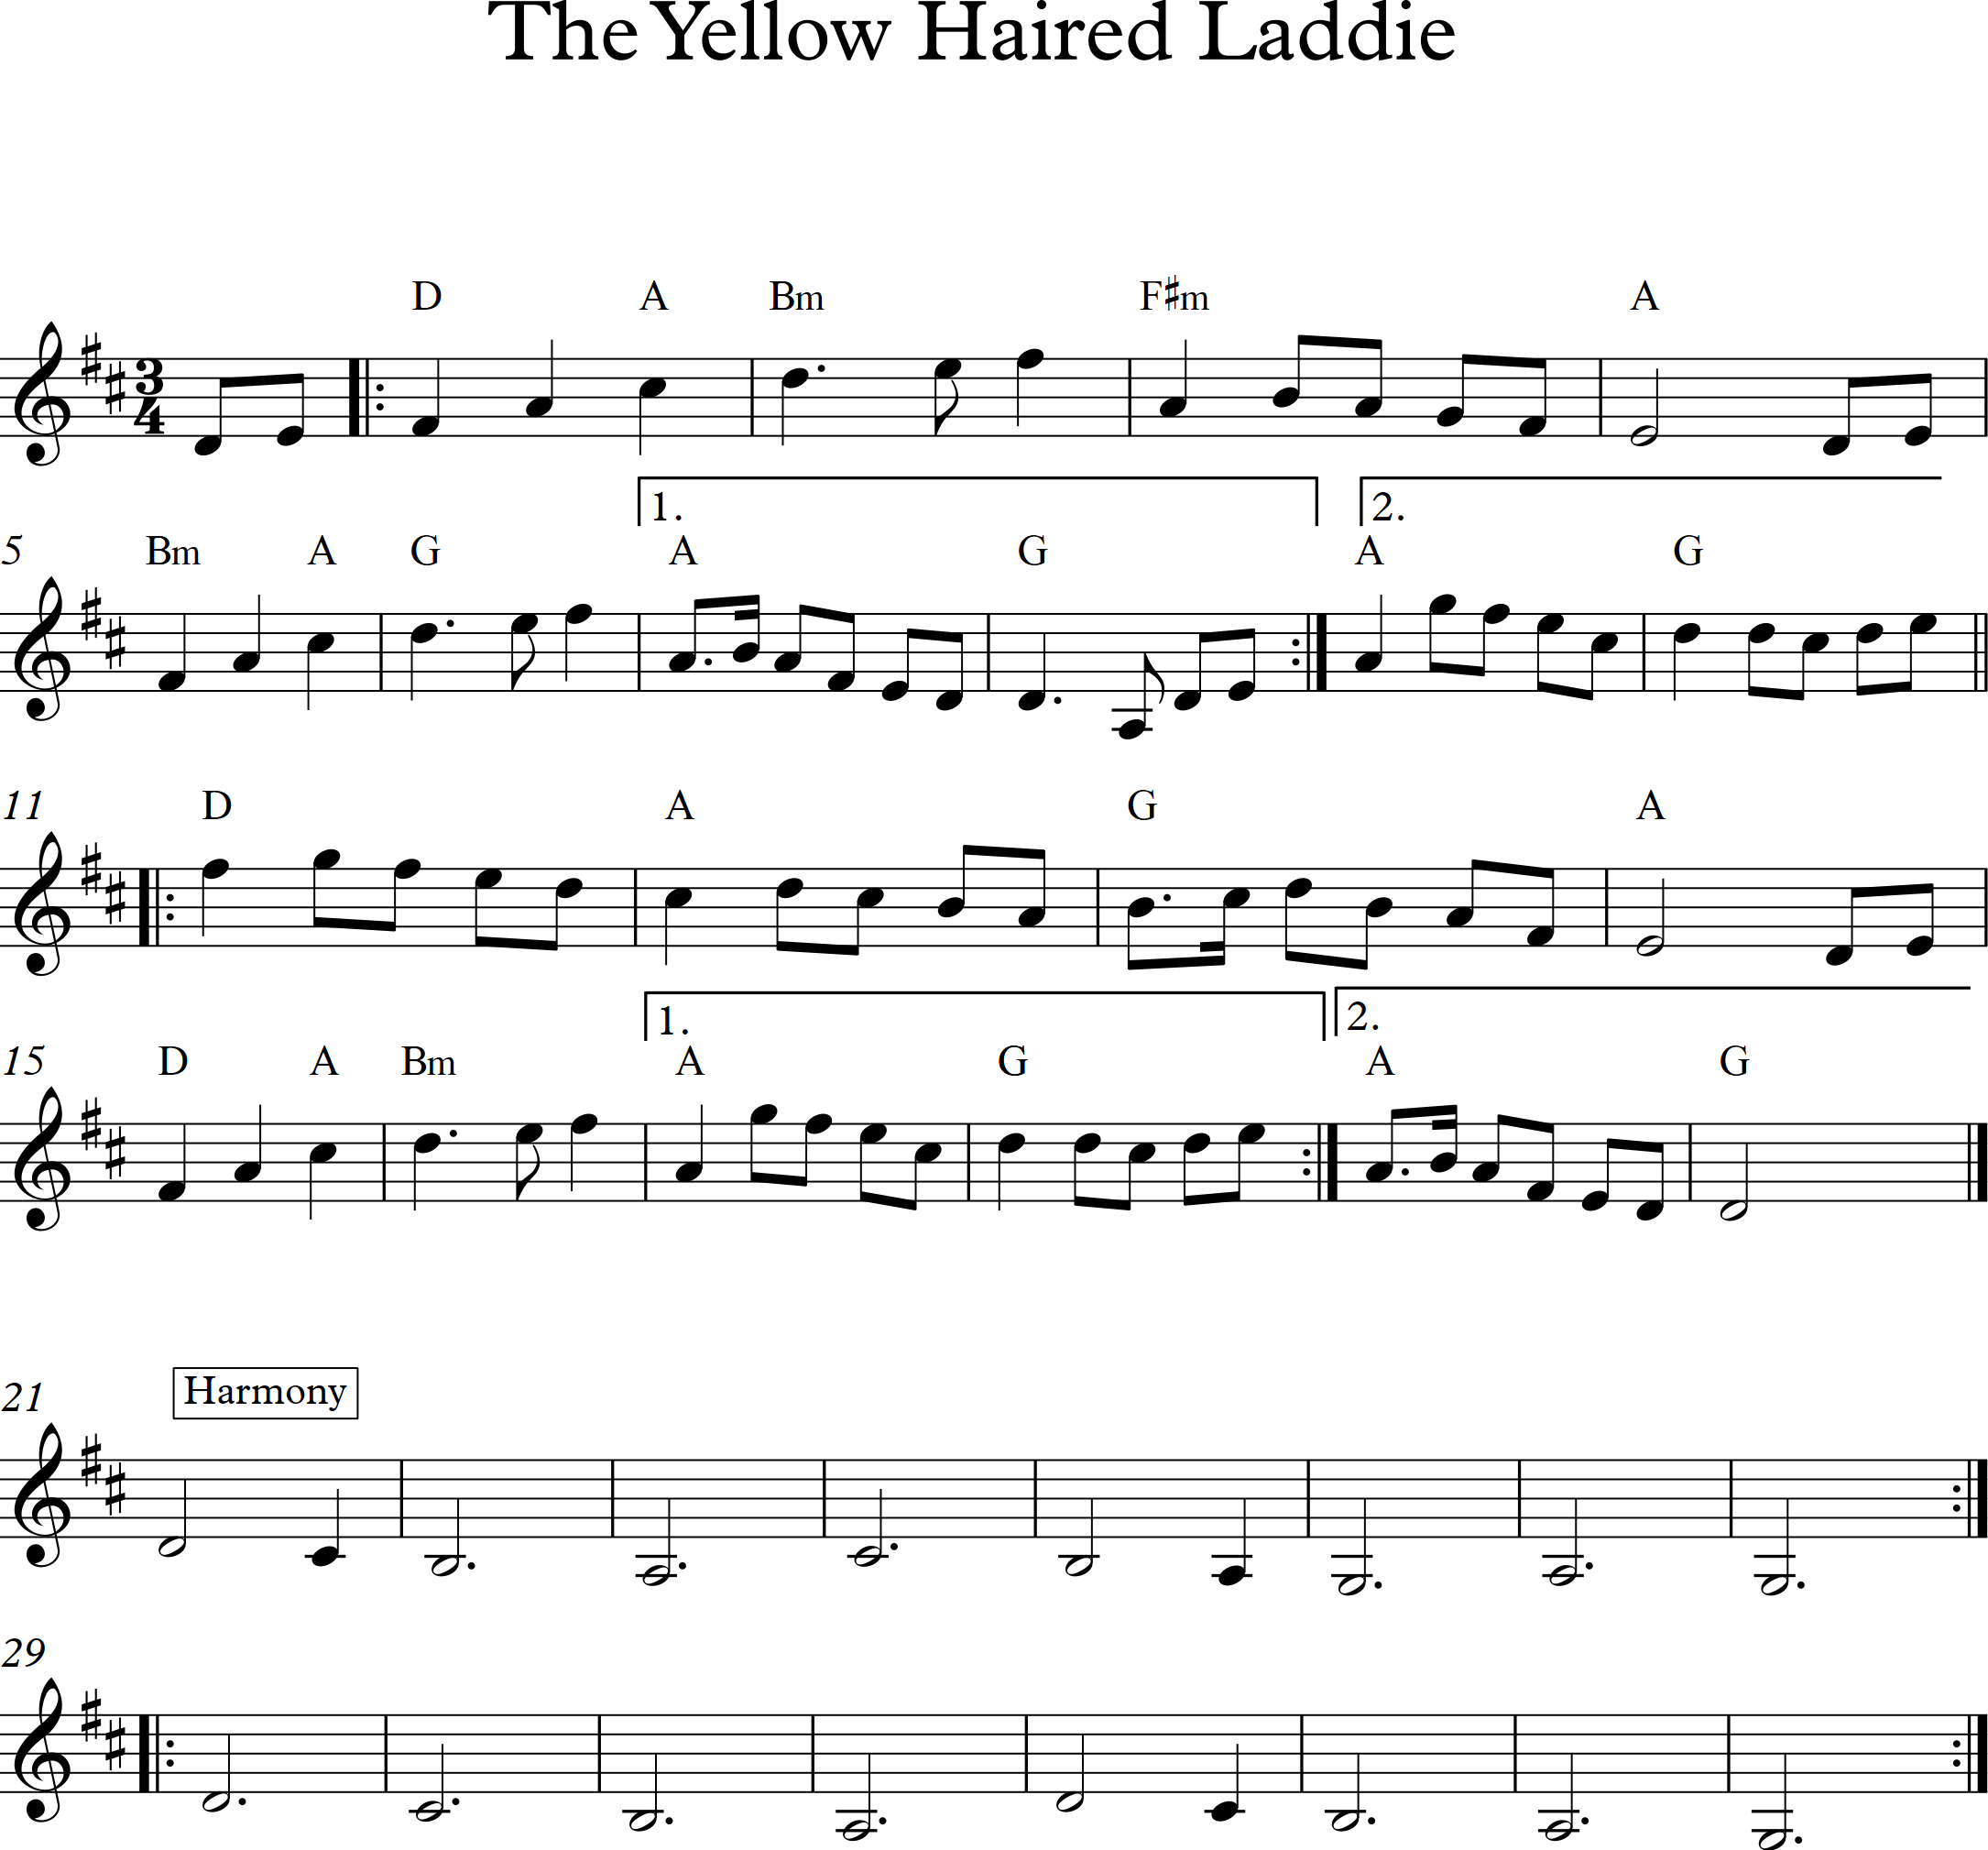 The Yellow Haired Laddie